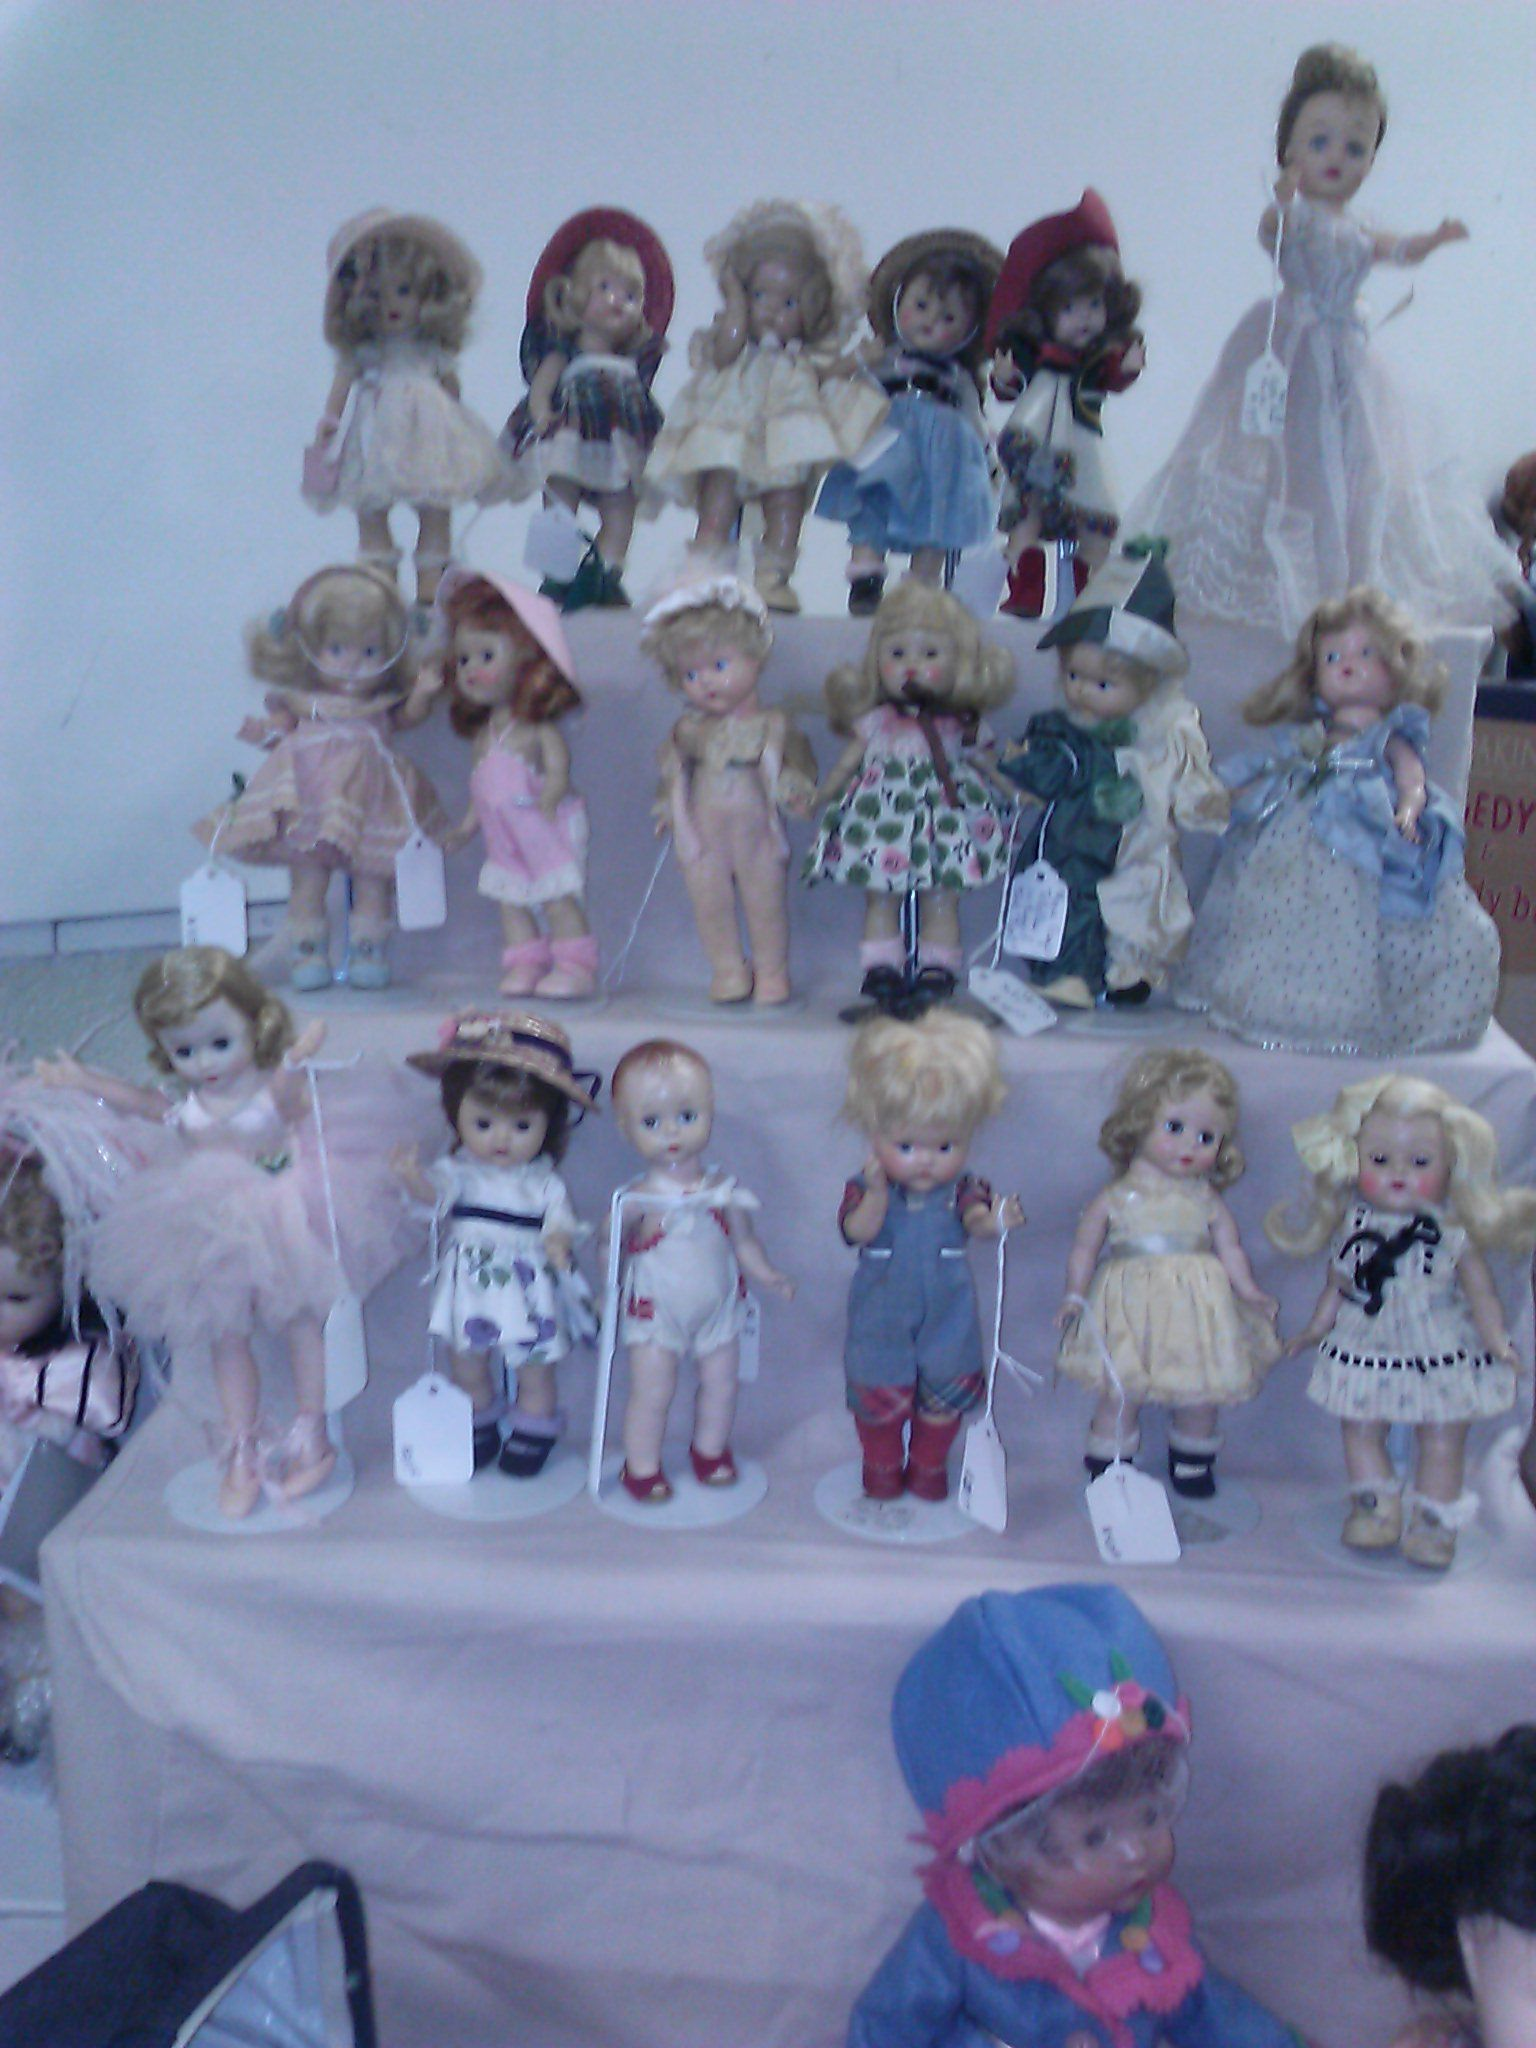 A large group of Ginny's at a recent doll show